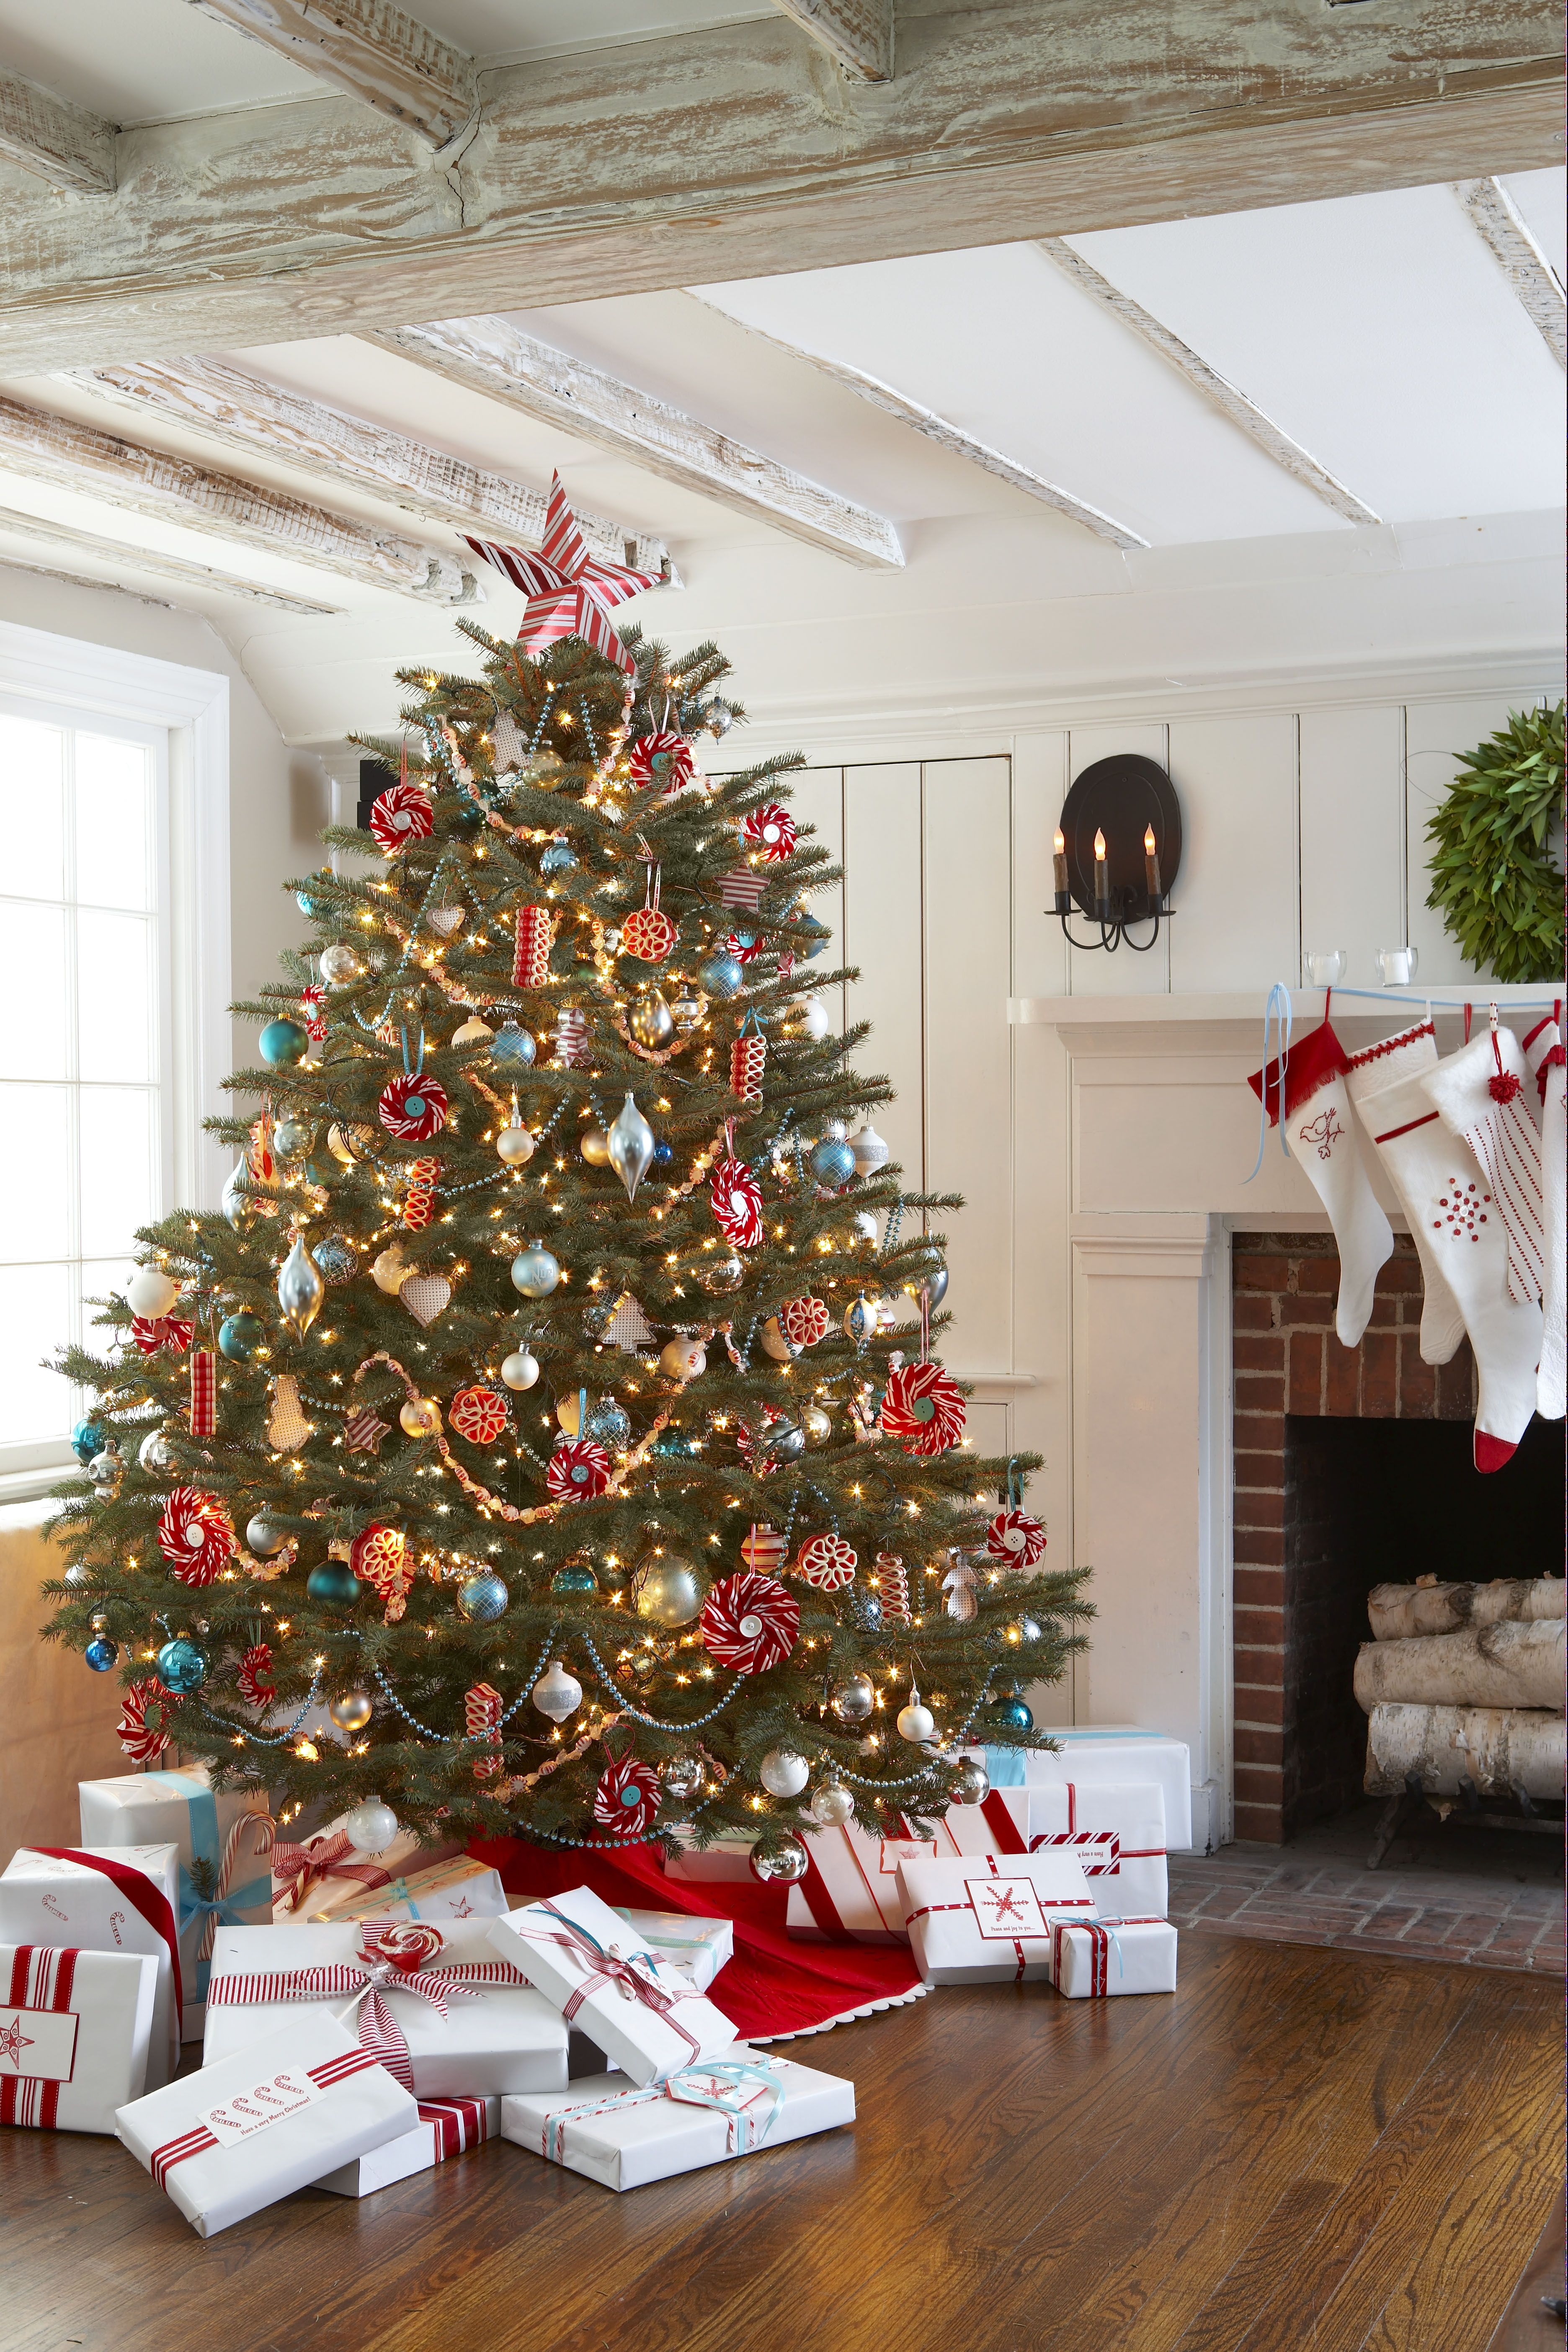 30 decorated christmas tree ideas pictures of christmas tree inspiration - Peppermint Christmas Tree